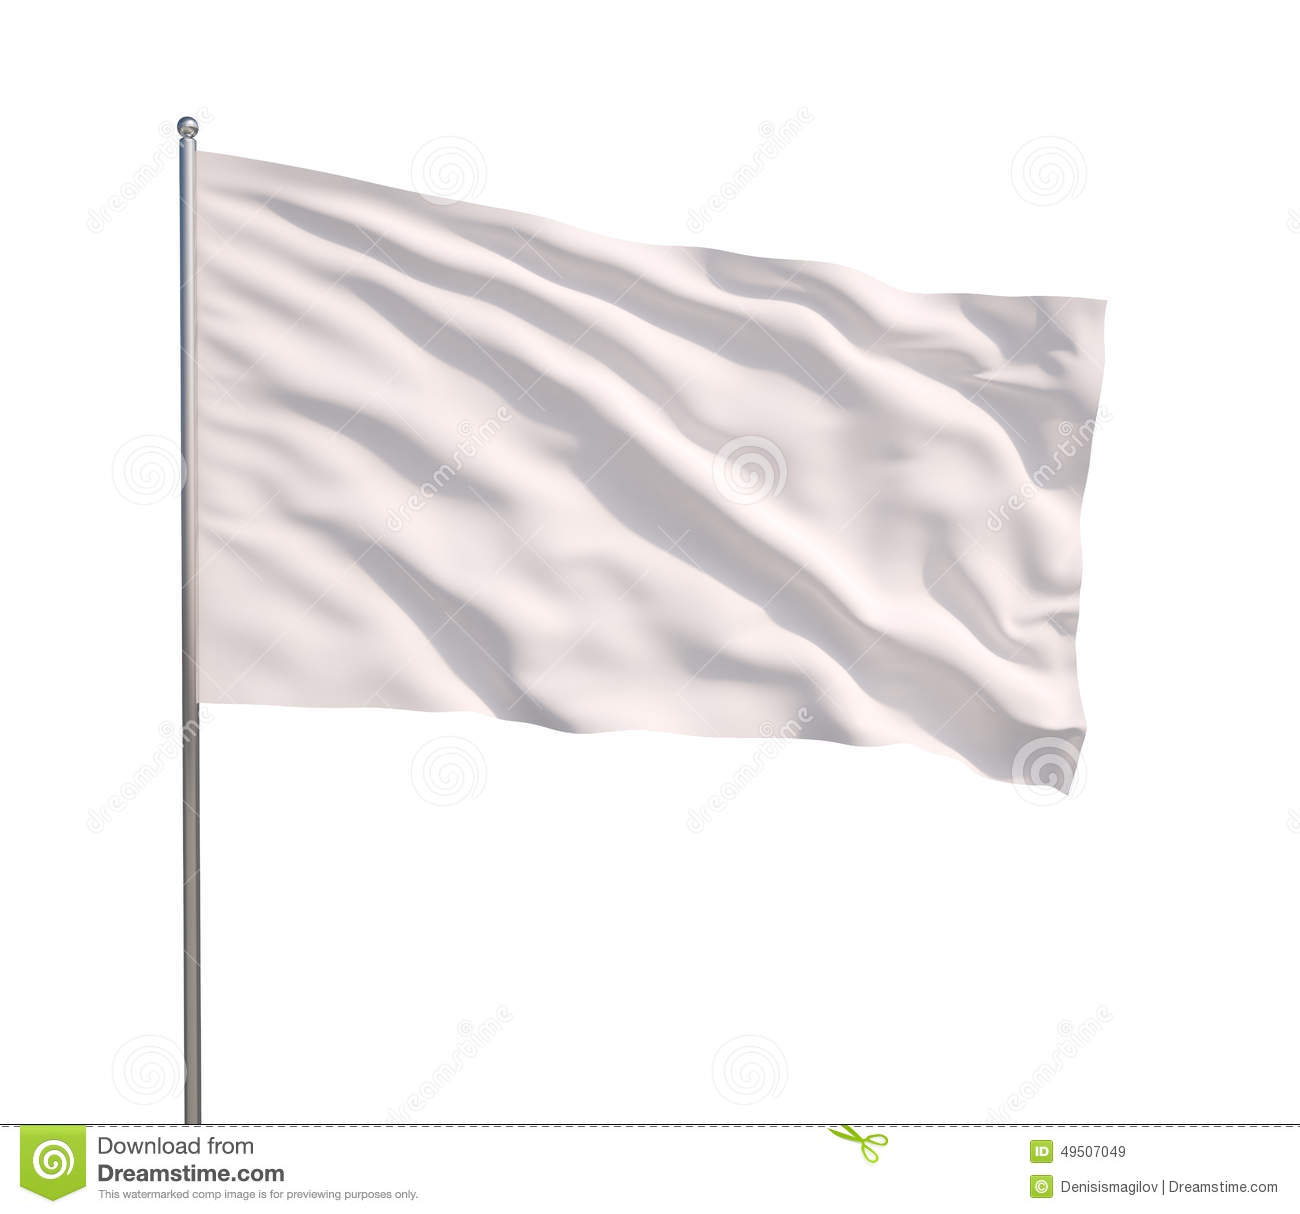 how to make a white flag